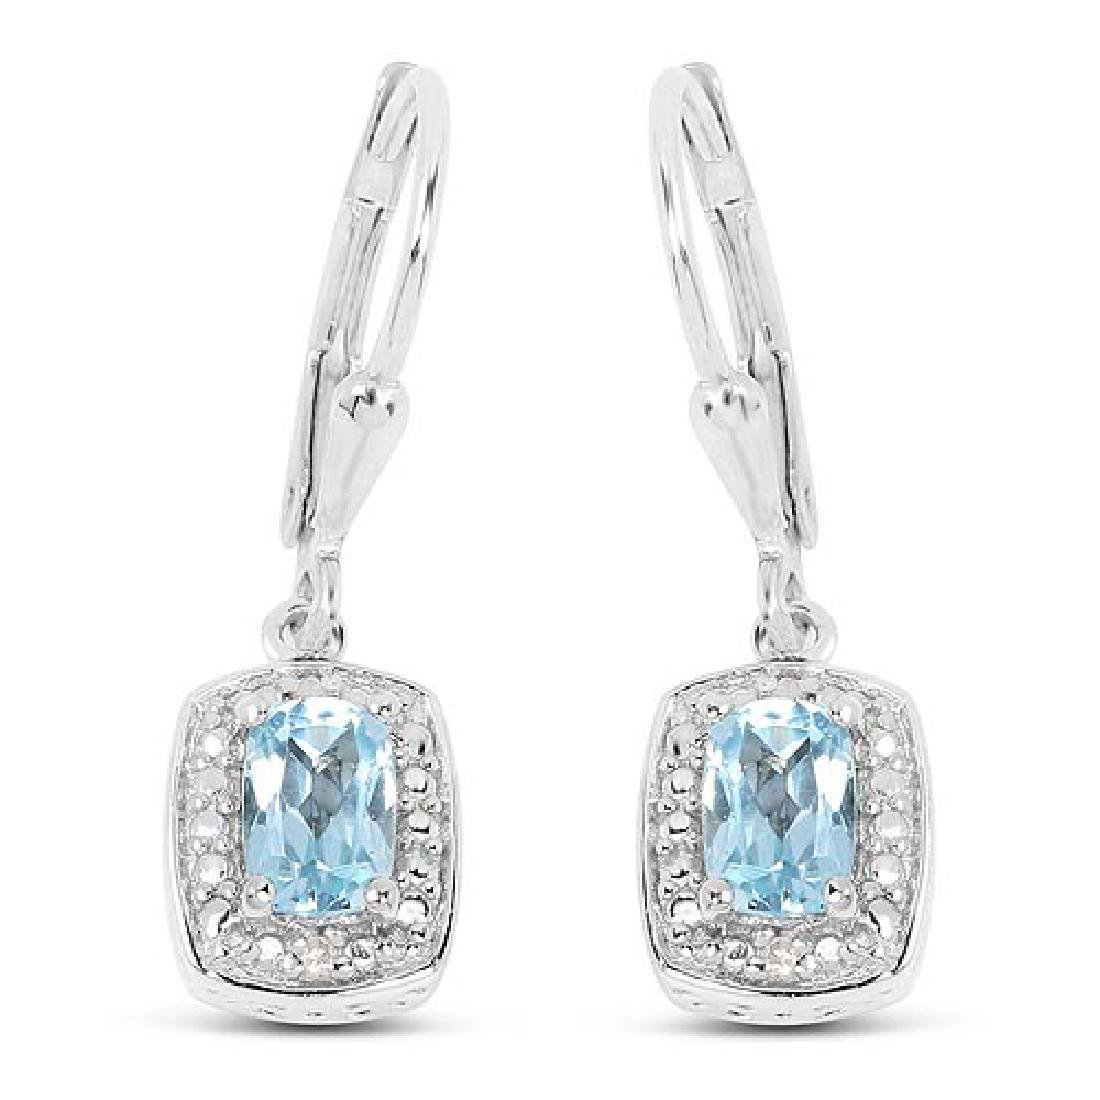 1.23 Carat Genuine Blue Topaz and White Diamond .925 St